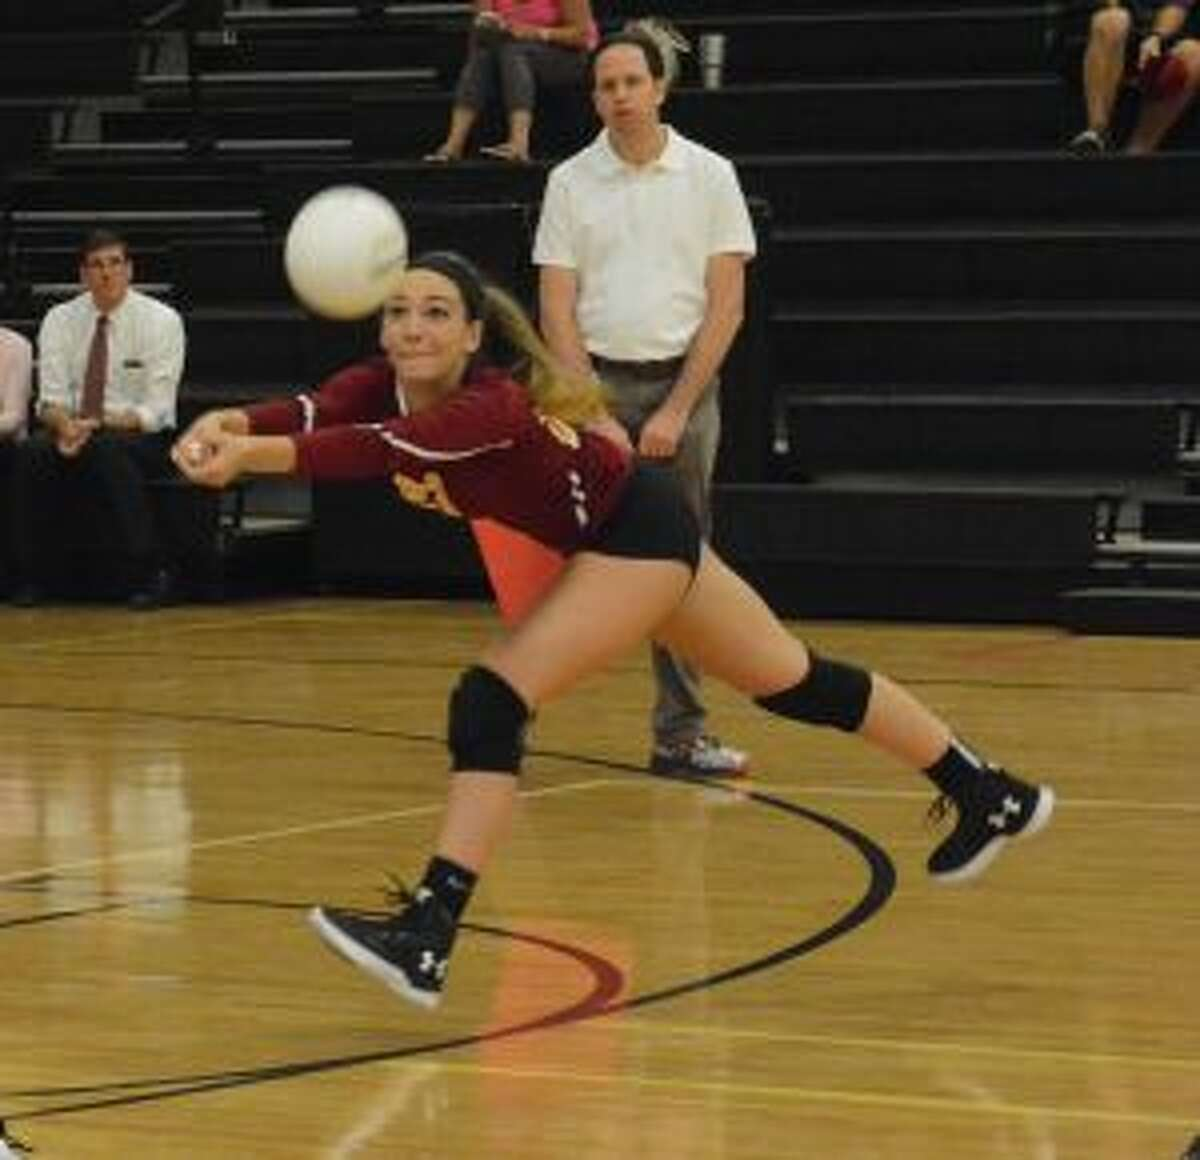 Bridget Fatse was a force at the net and in service for St. Joseph. - Andy Hutchison photo